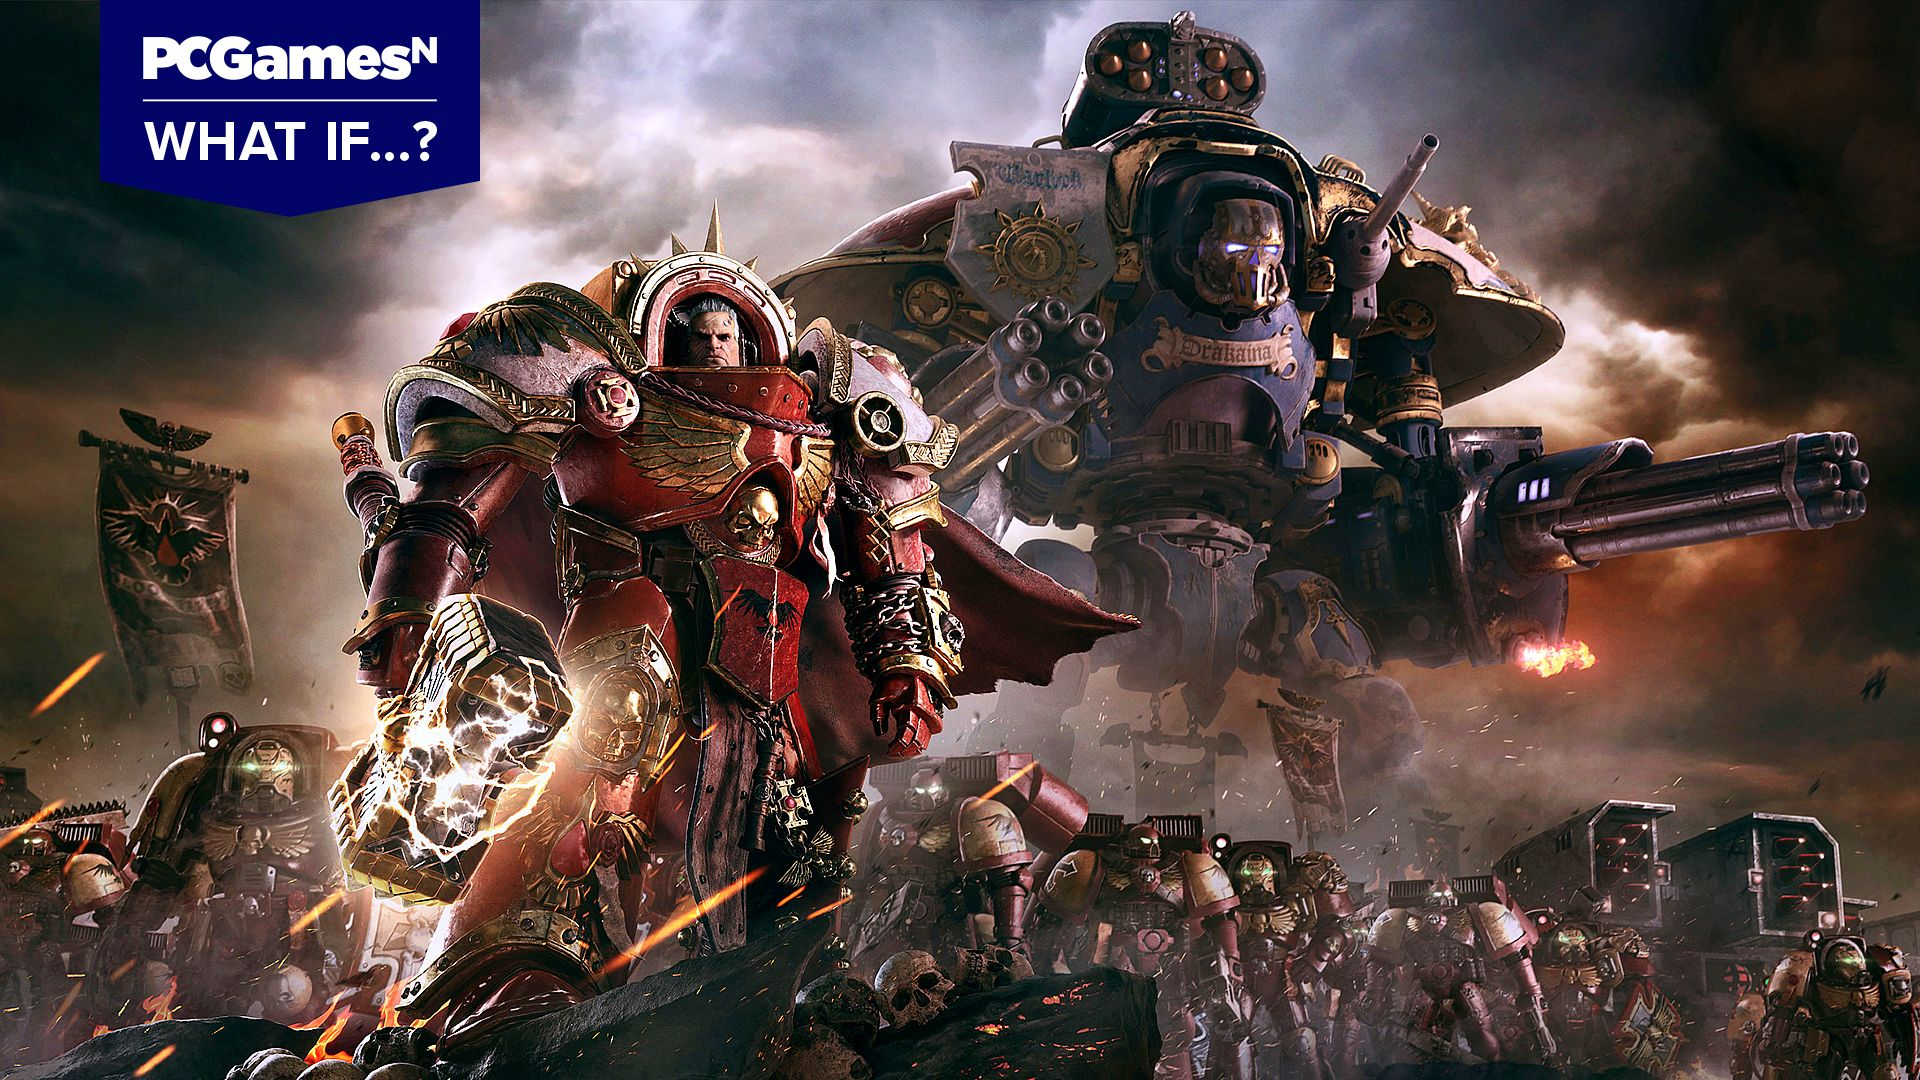 What if: THQ hadn't lost the rights to Dawn of War, Evolve, or South Park?